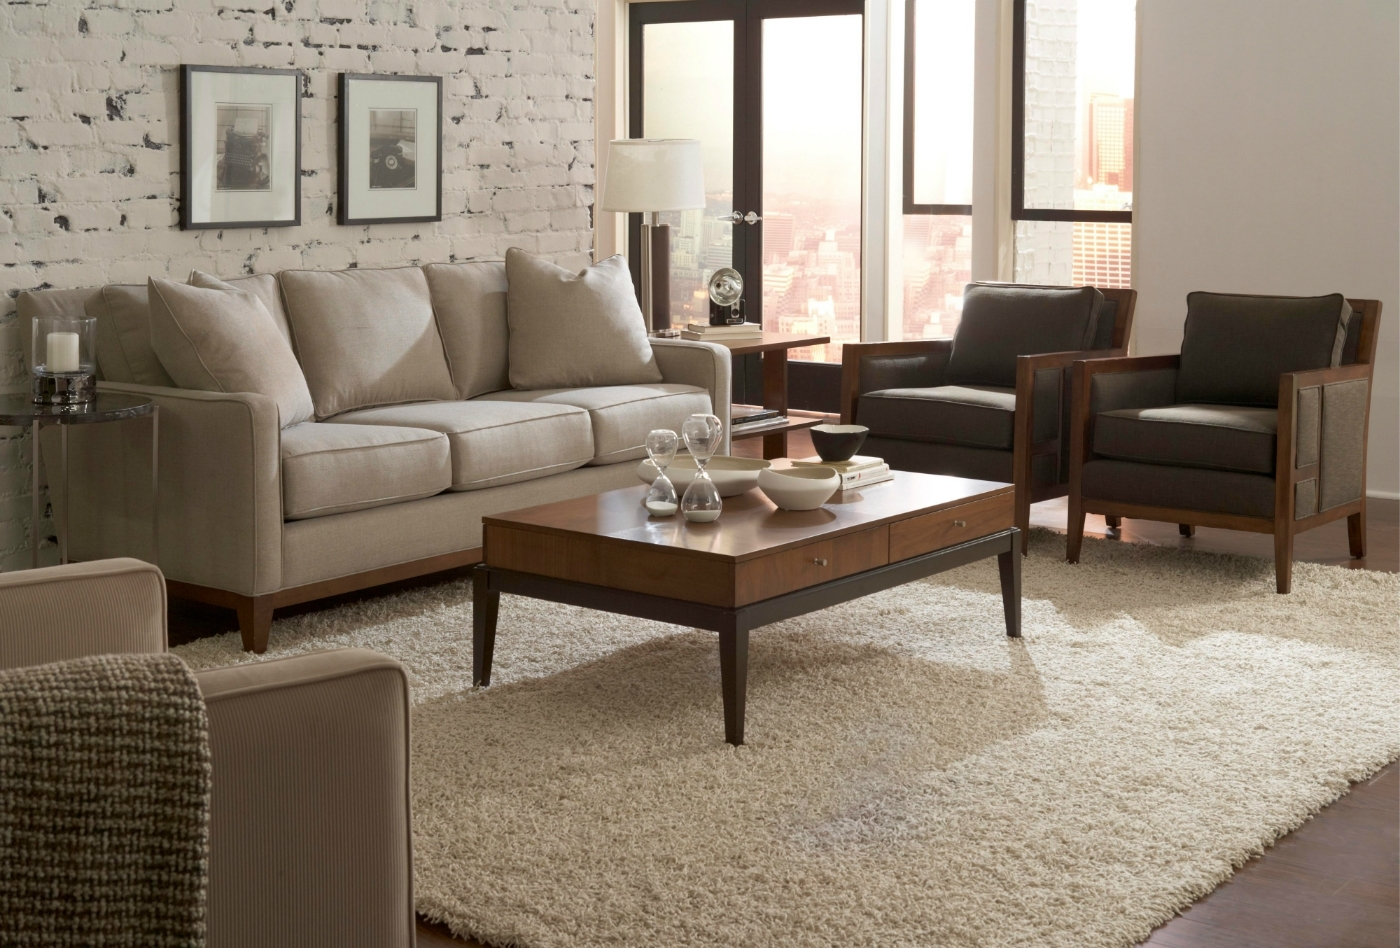 Best And Newest Sofa With Chairs With Regard To Quinn Living Room Sofa And Chairs – Chambers Furniture (View 2 of 20)